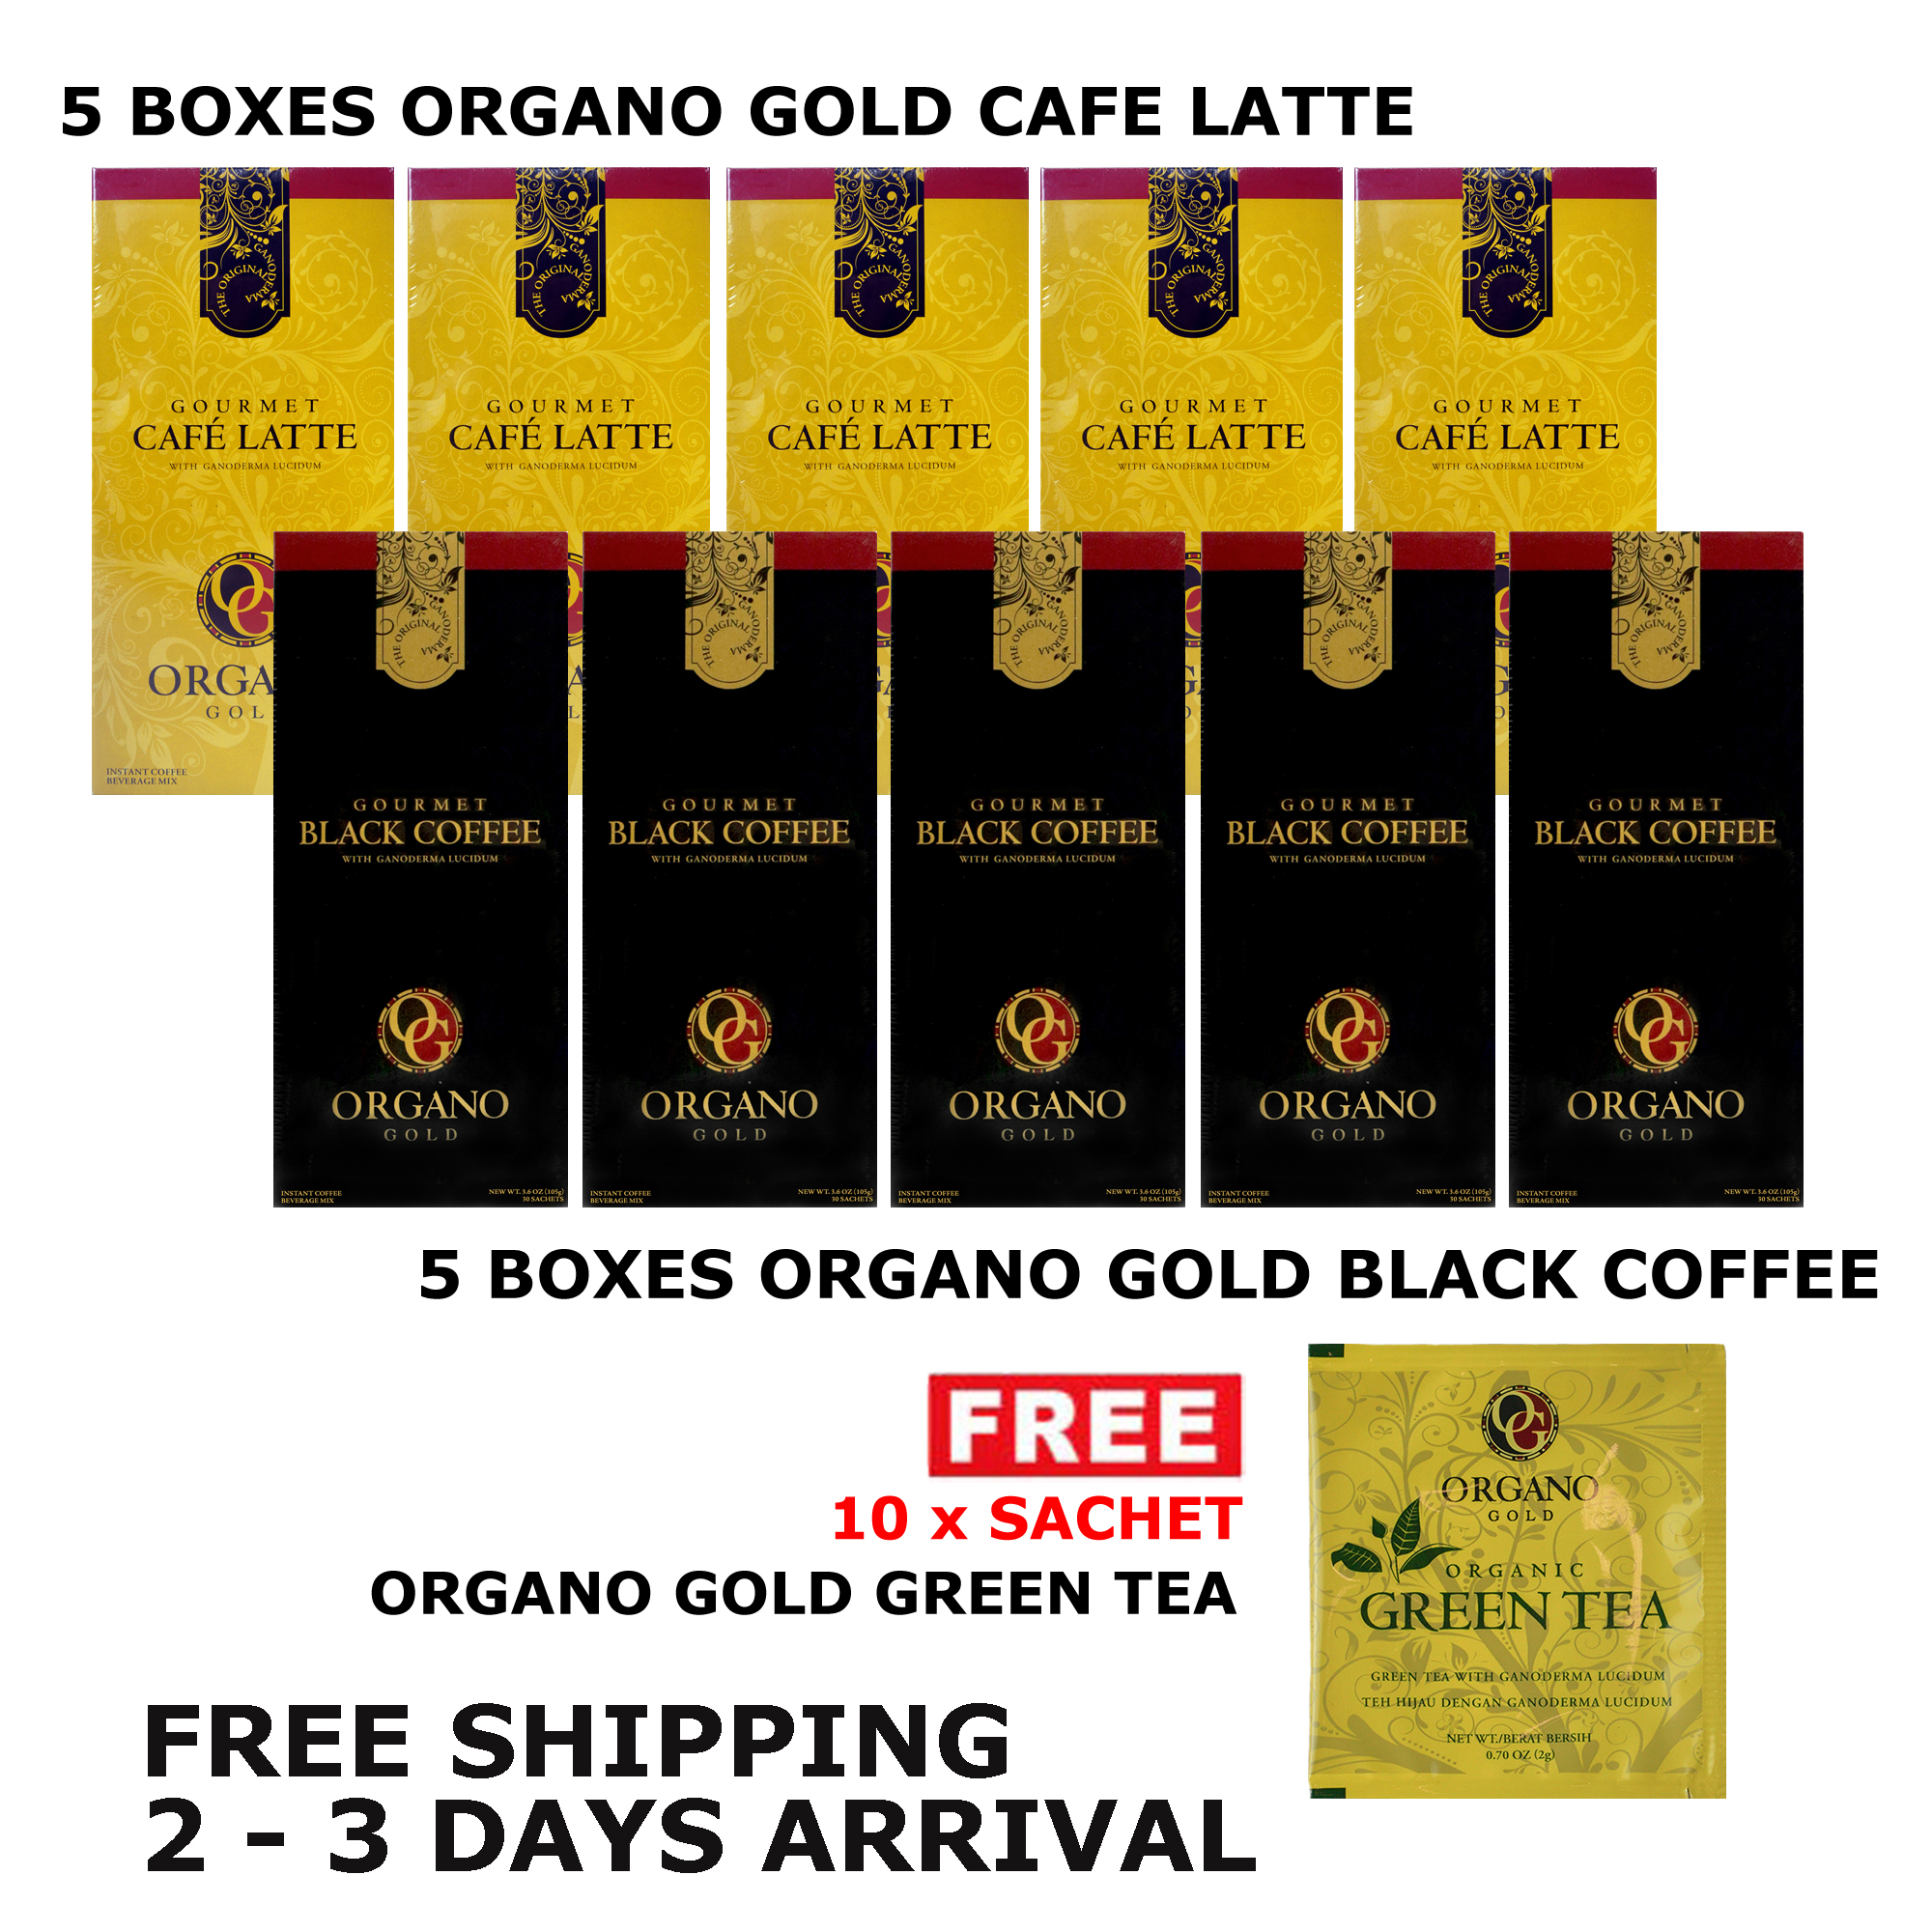 Organo Gold Cafe Latte 5 Box + O Gold Black Coffee 5 Boxes